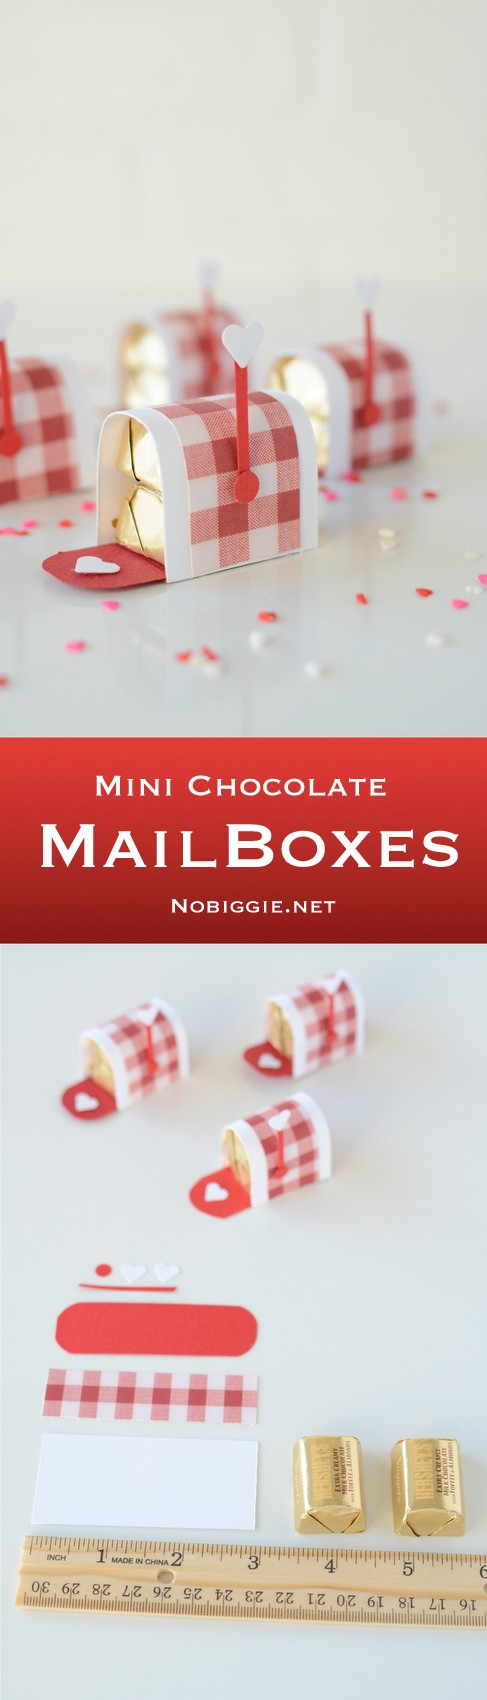 mini chocolate mailboxes | a Valentine's Day treat | Video on NoBiggie.net